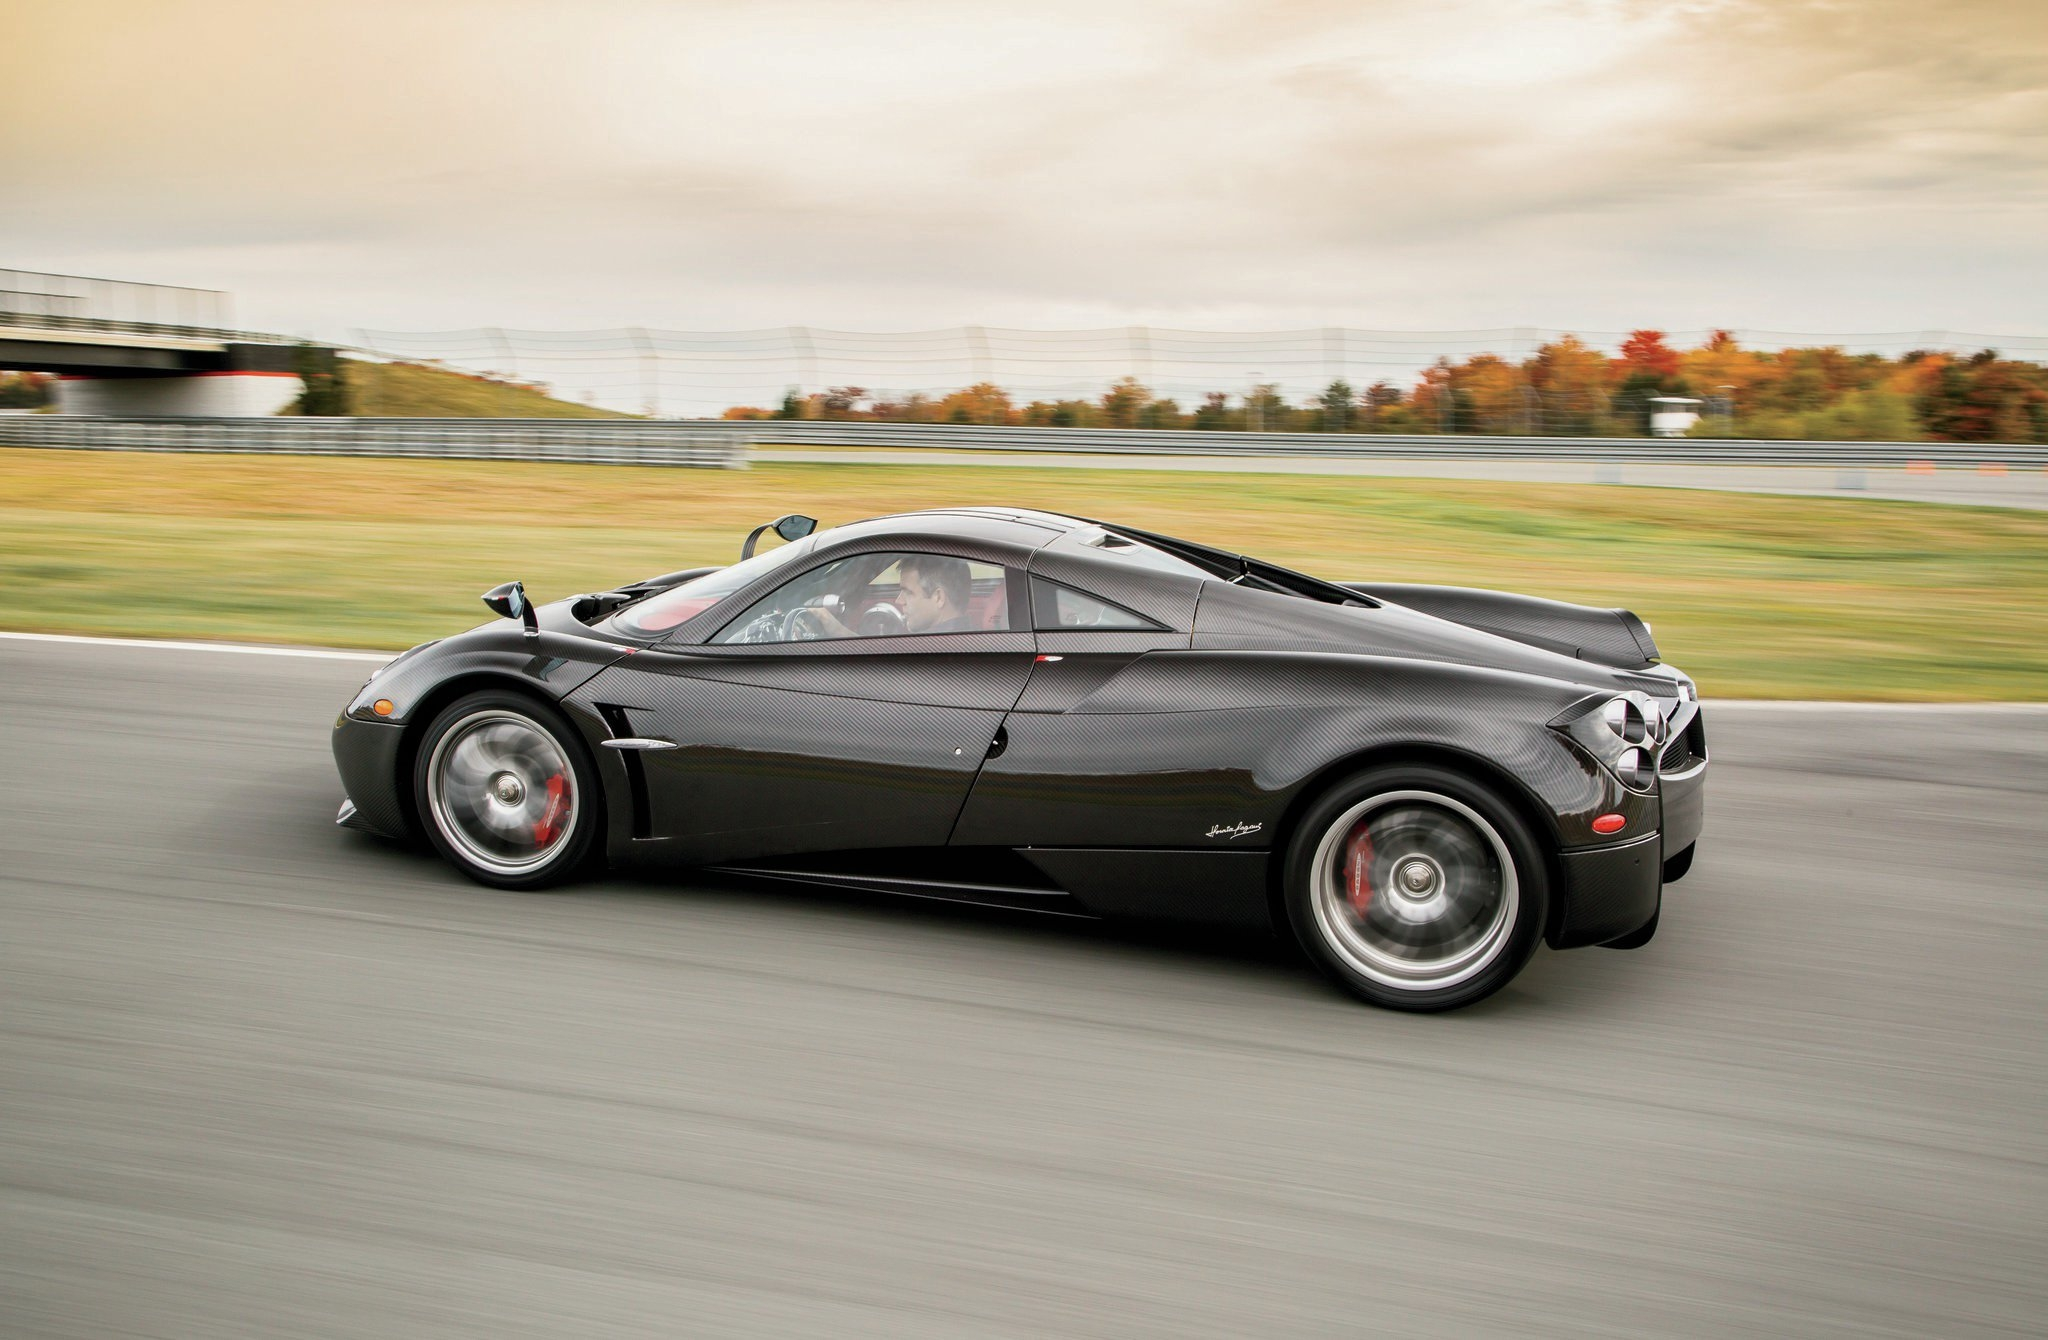 Performance: 2012 Pagani Huayra